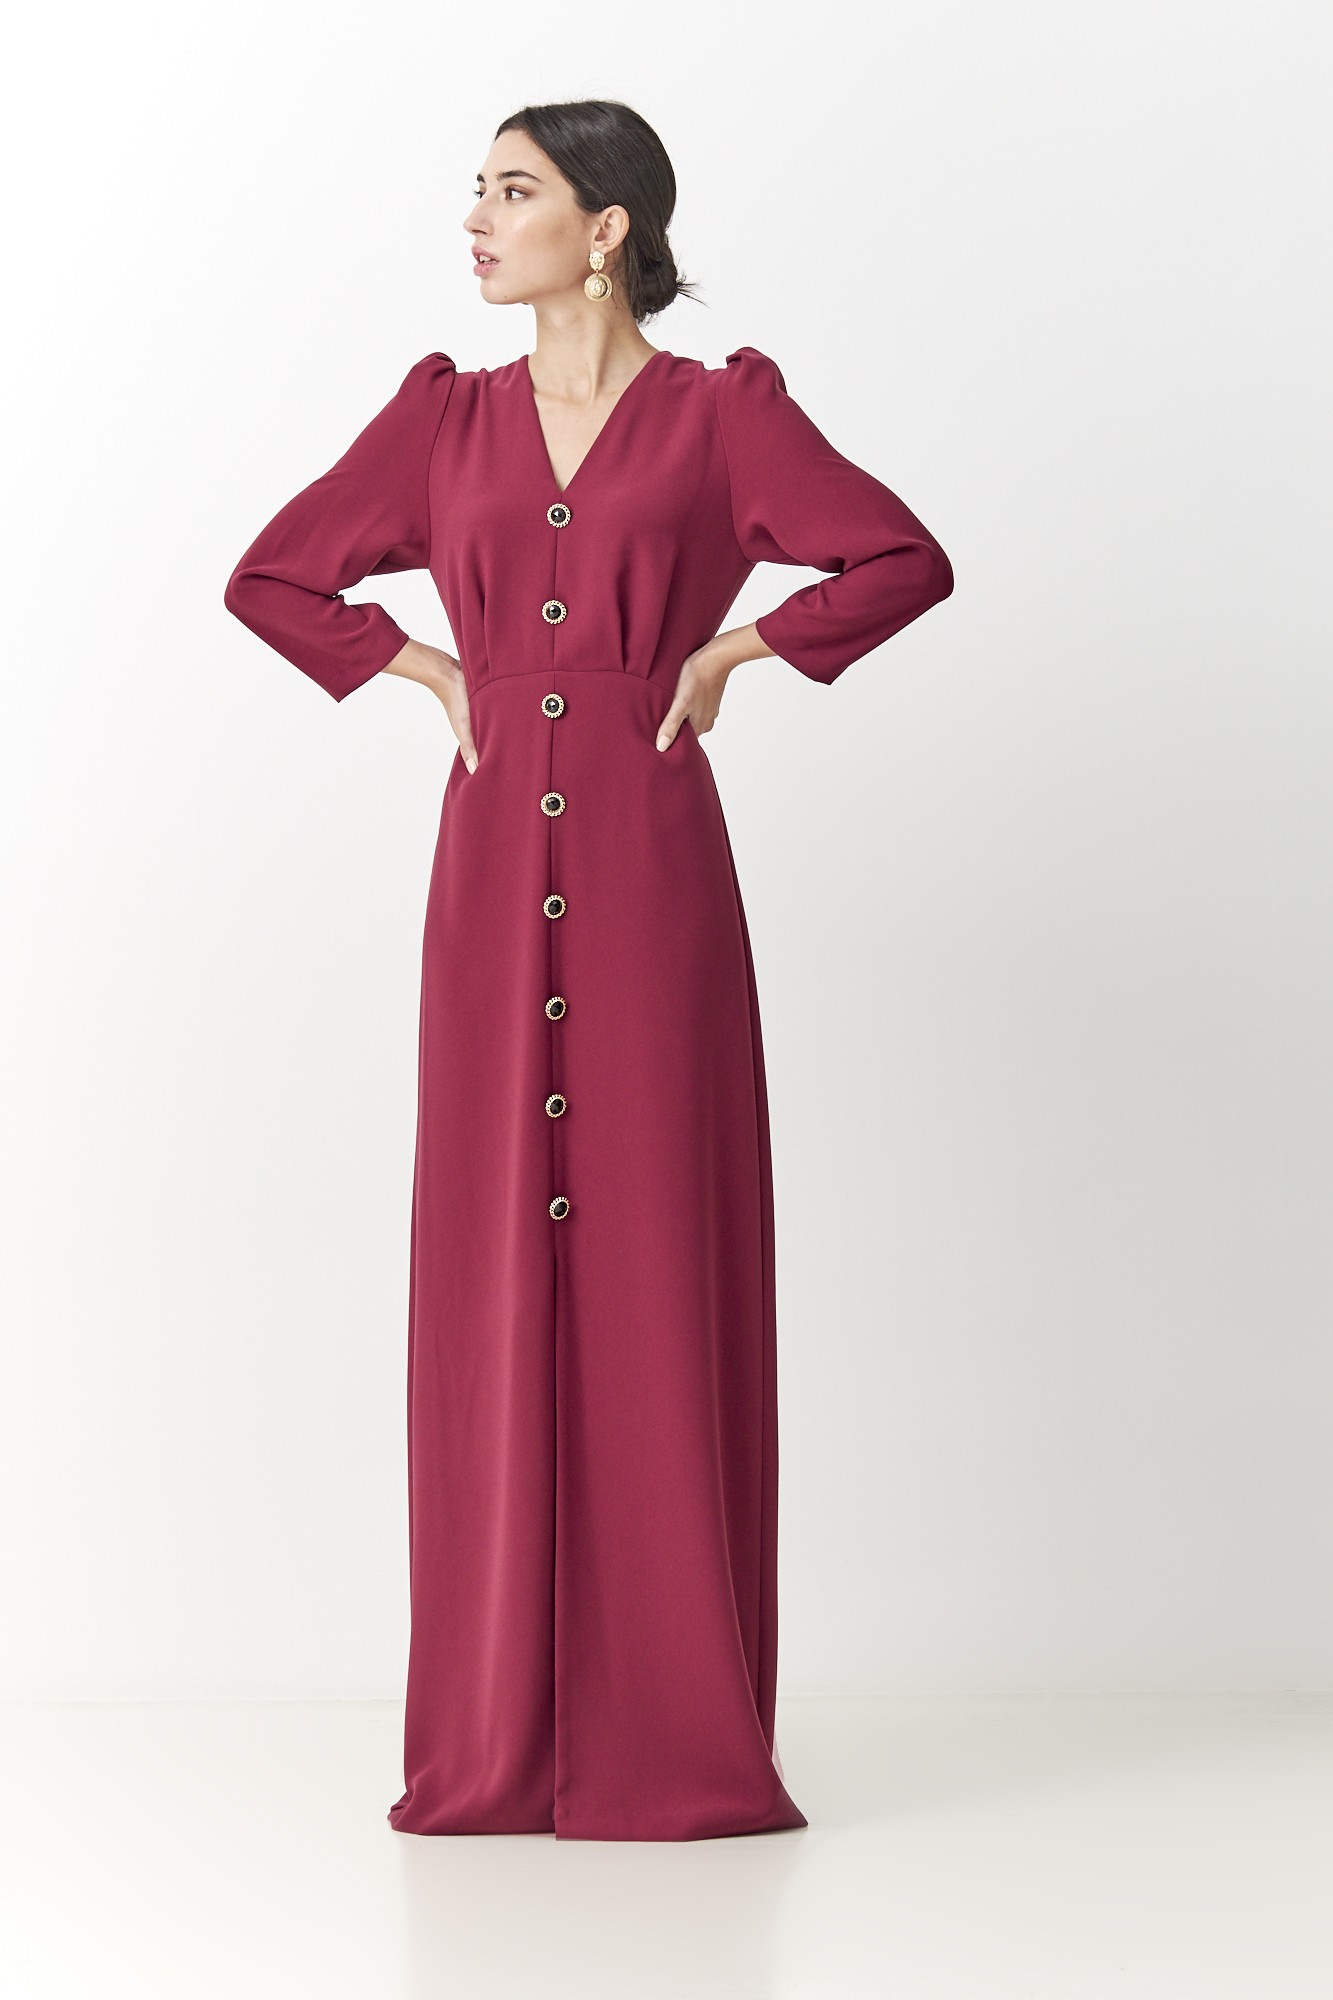 BURGUNDY JUANA FW DRESS